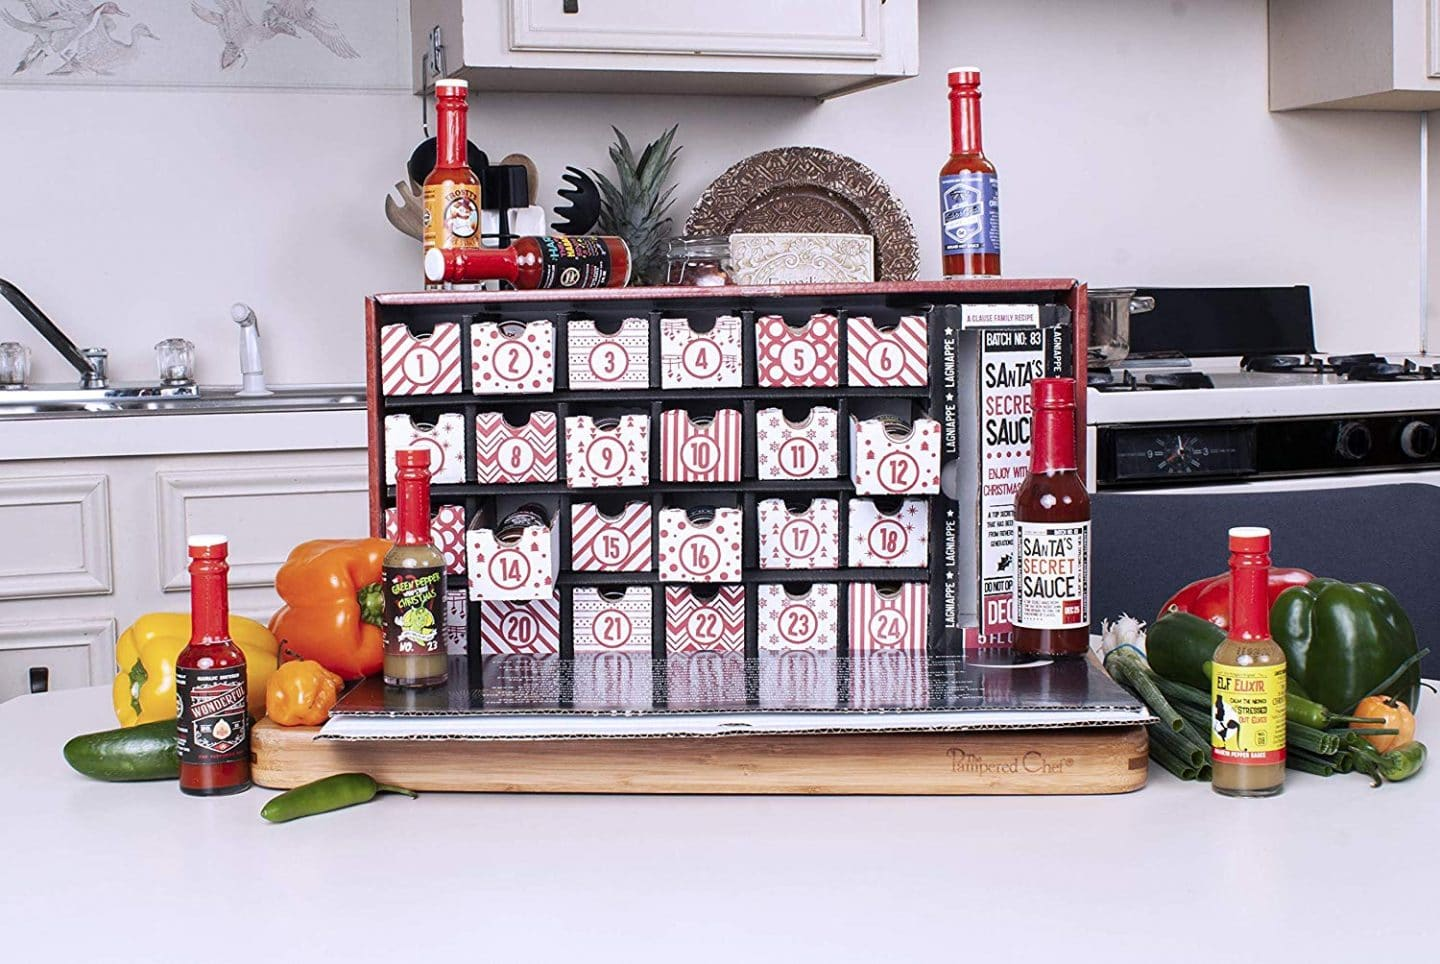 This Advent Calendar Will Gift You With 25 Hot Sauces Leading Up To Christmas